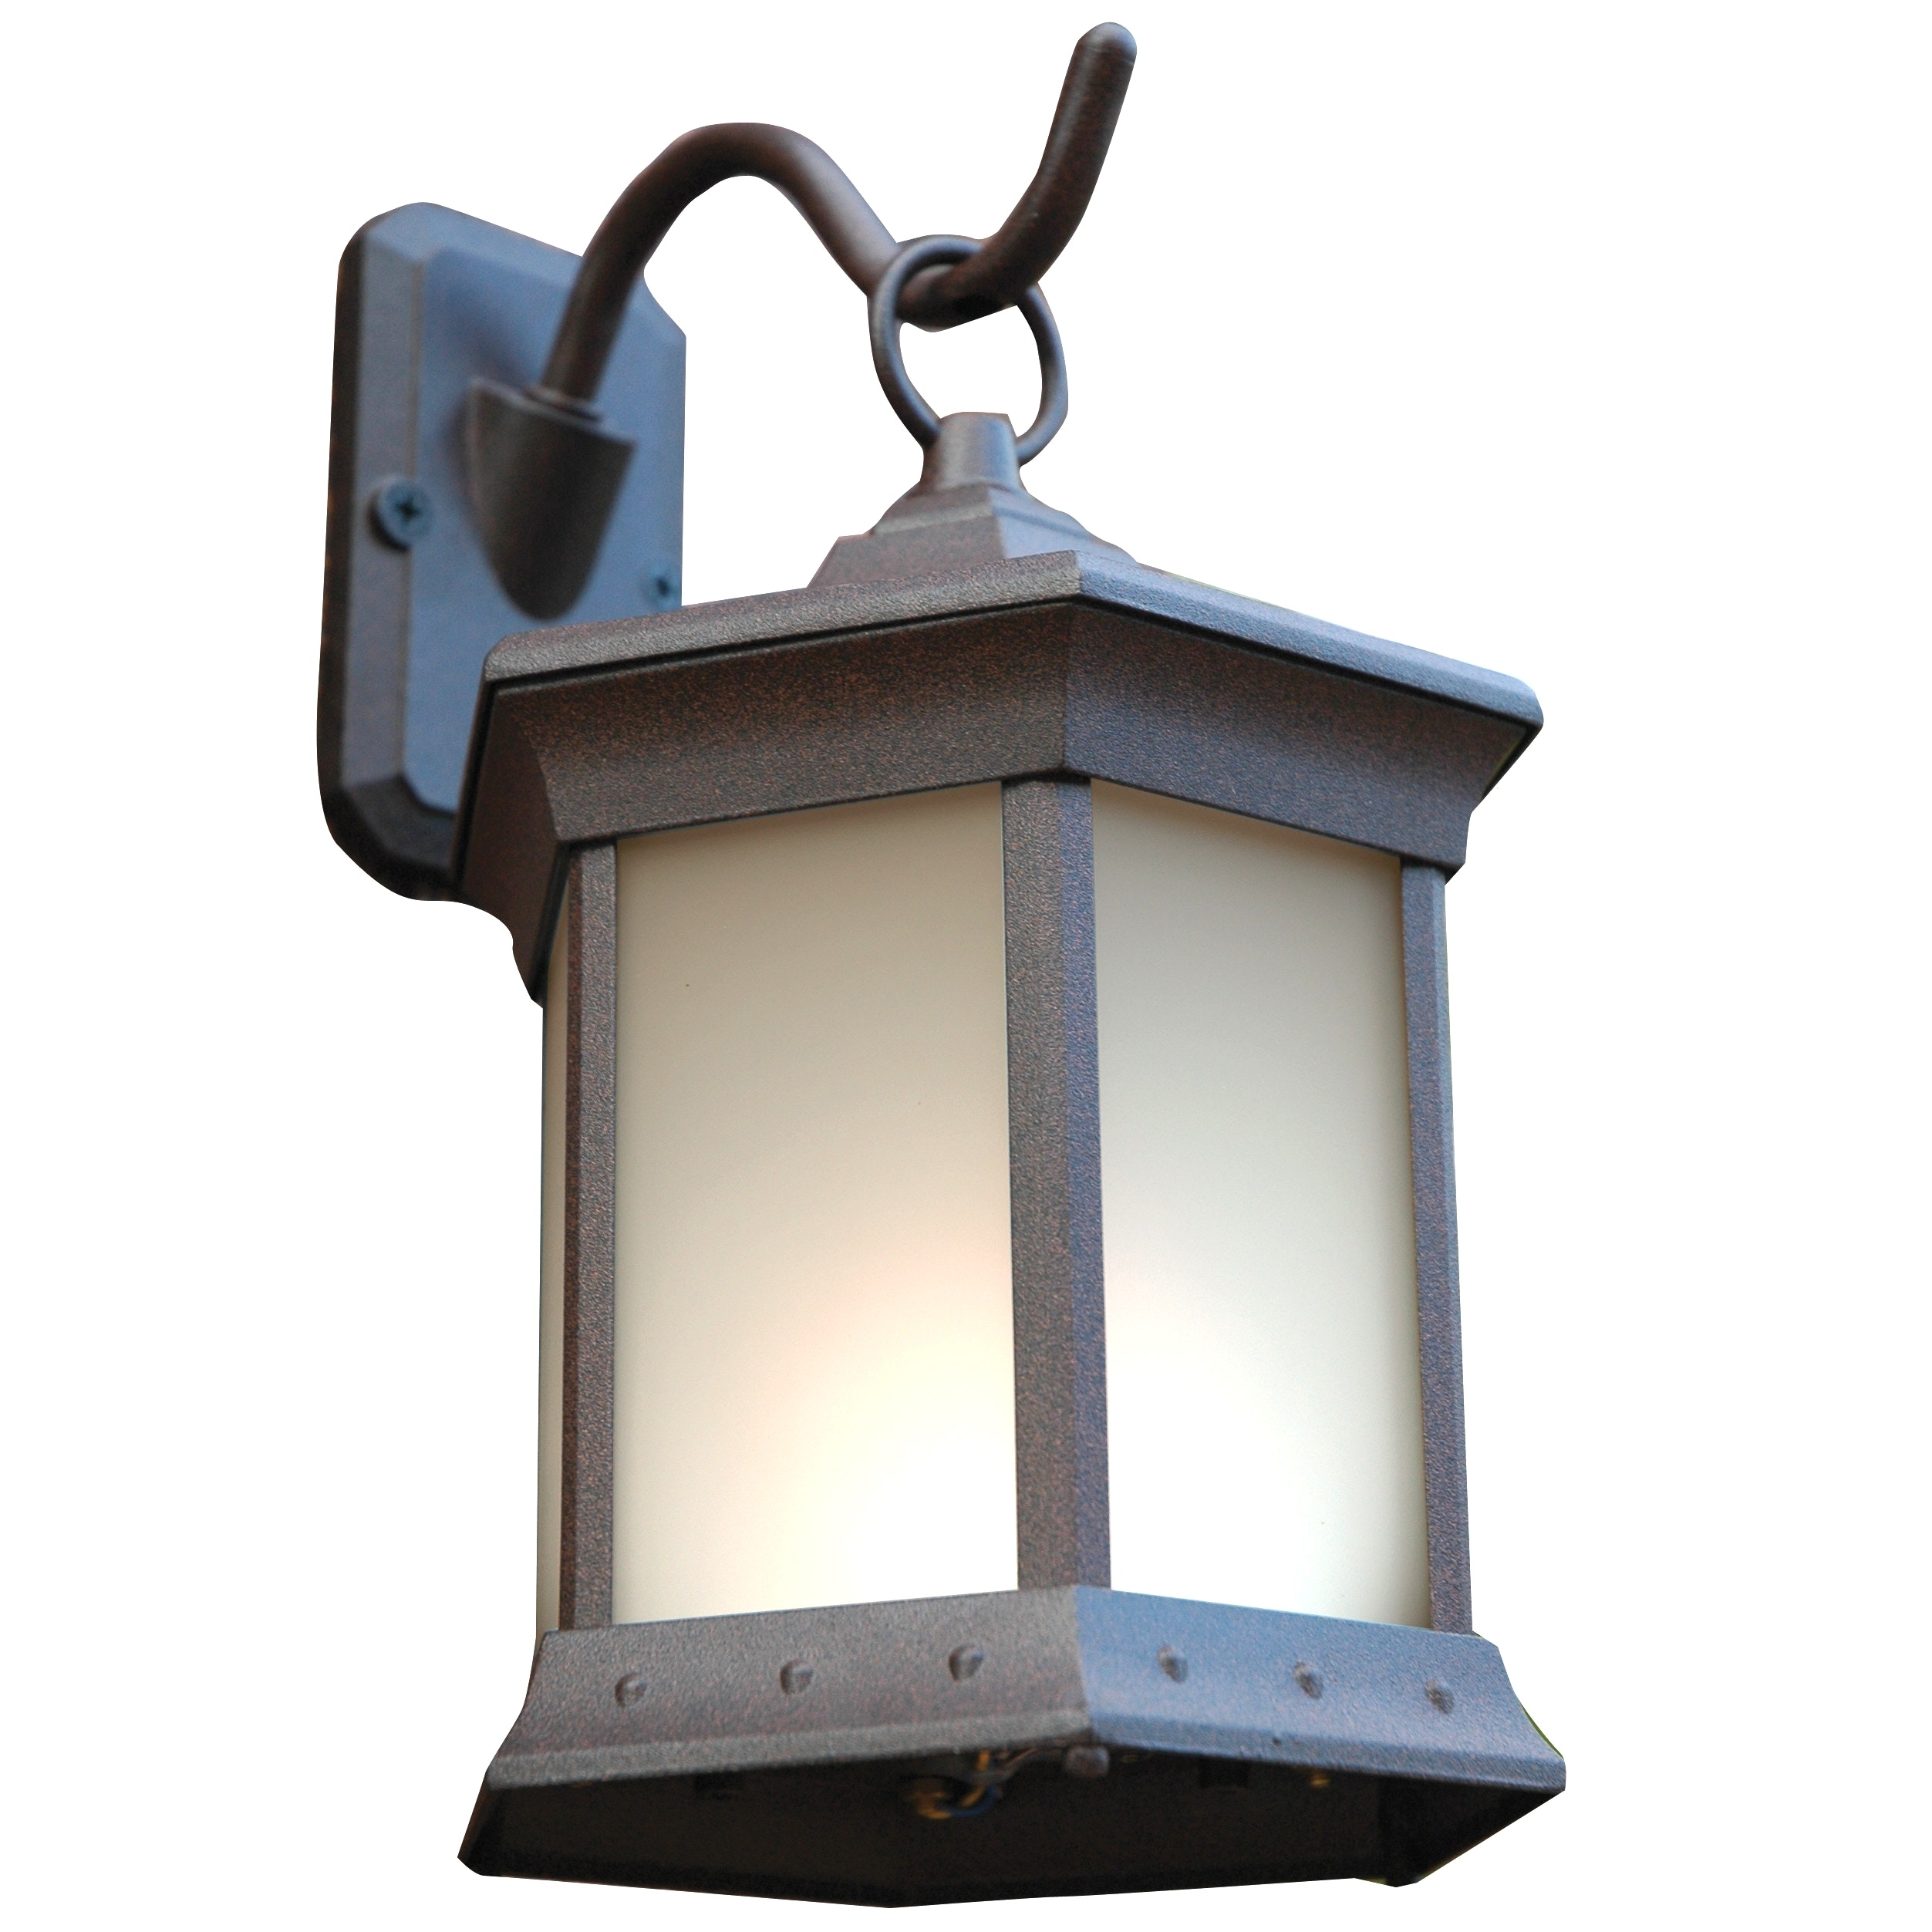 Popular Photo of Battery Operated Outdoor Lights At Wayfair